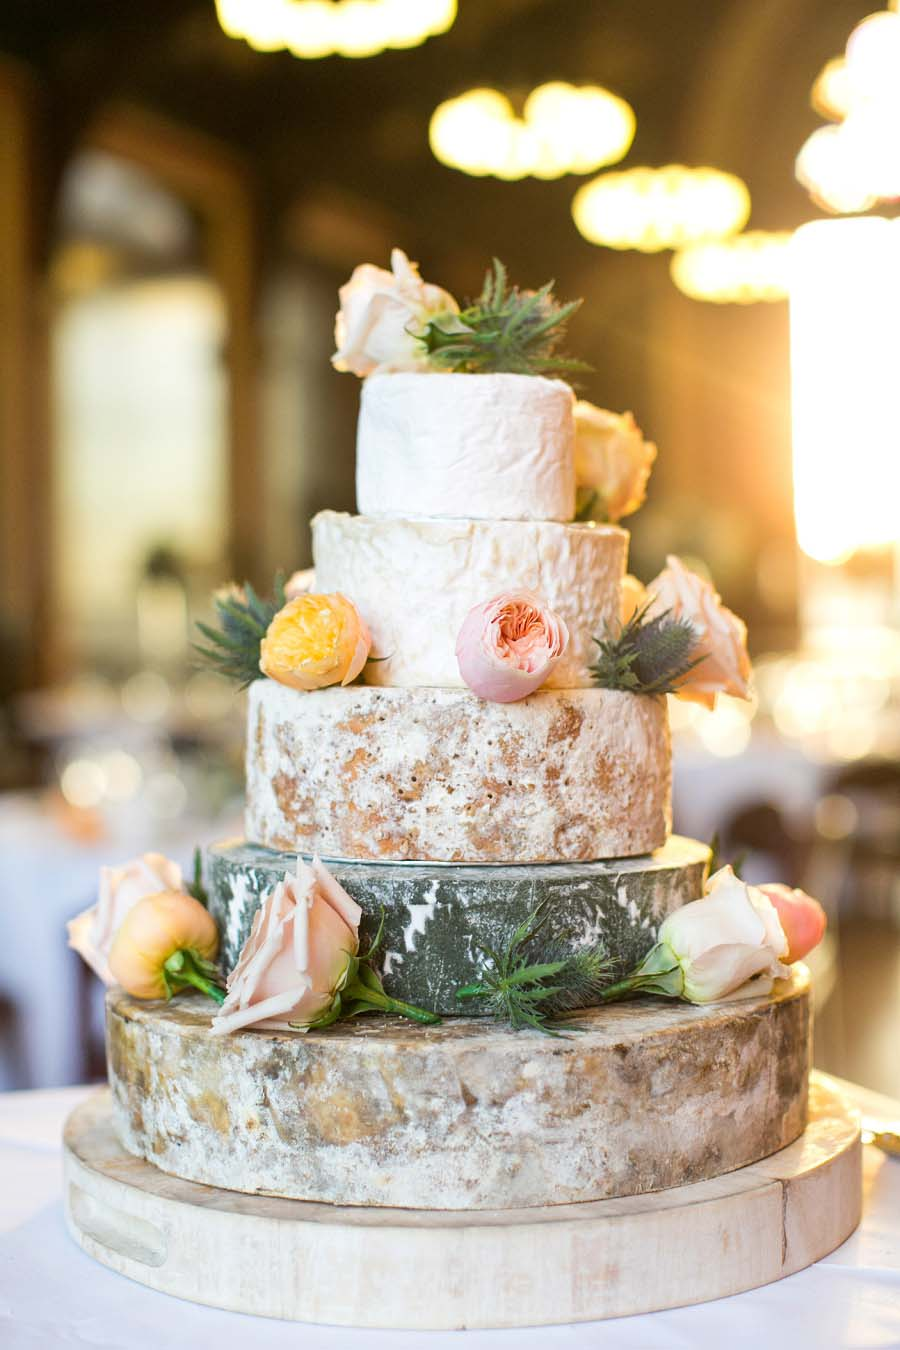 Cake Images With Name Sunny : A Sunny Autumnal Wedding With Pumpkins, Lanterns & Vines ...